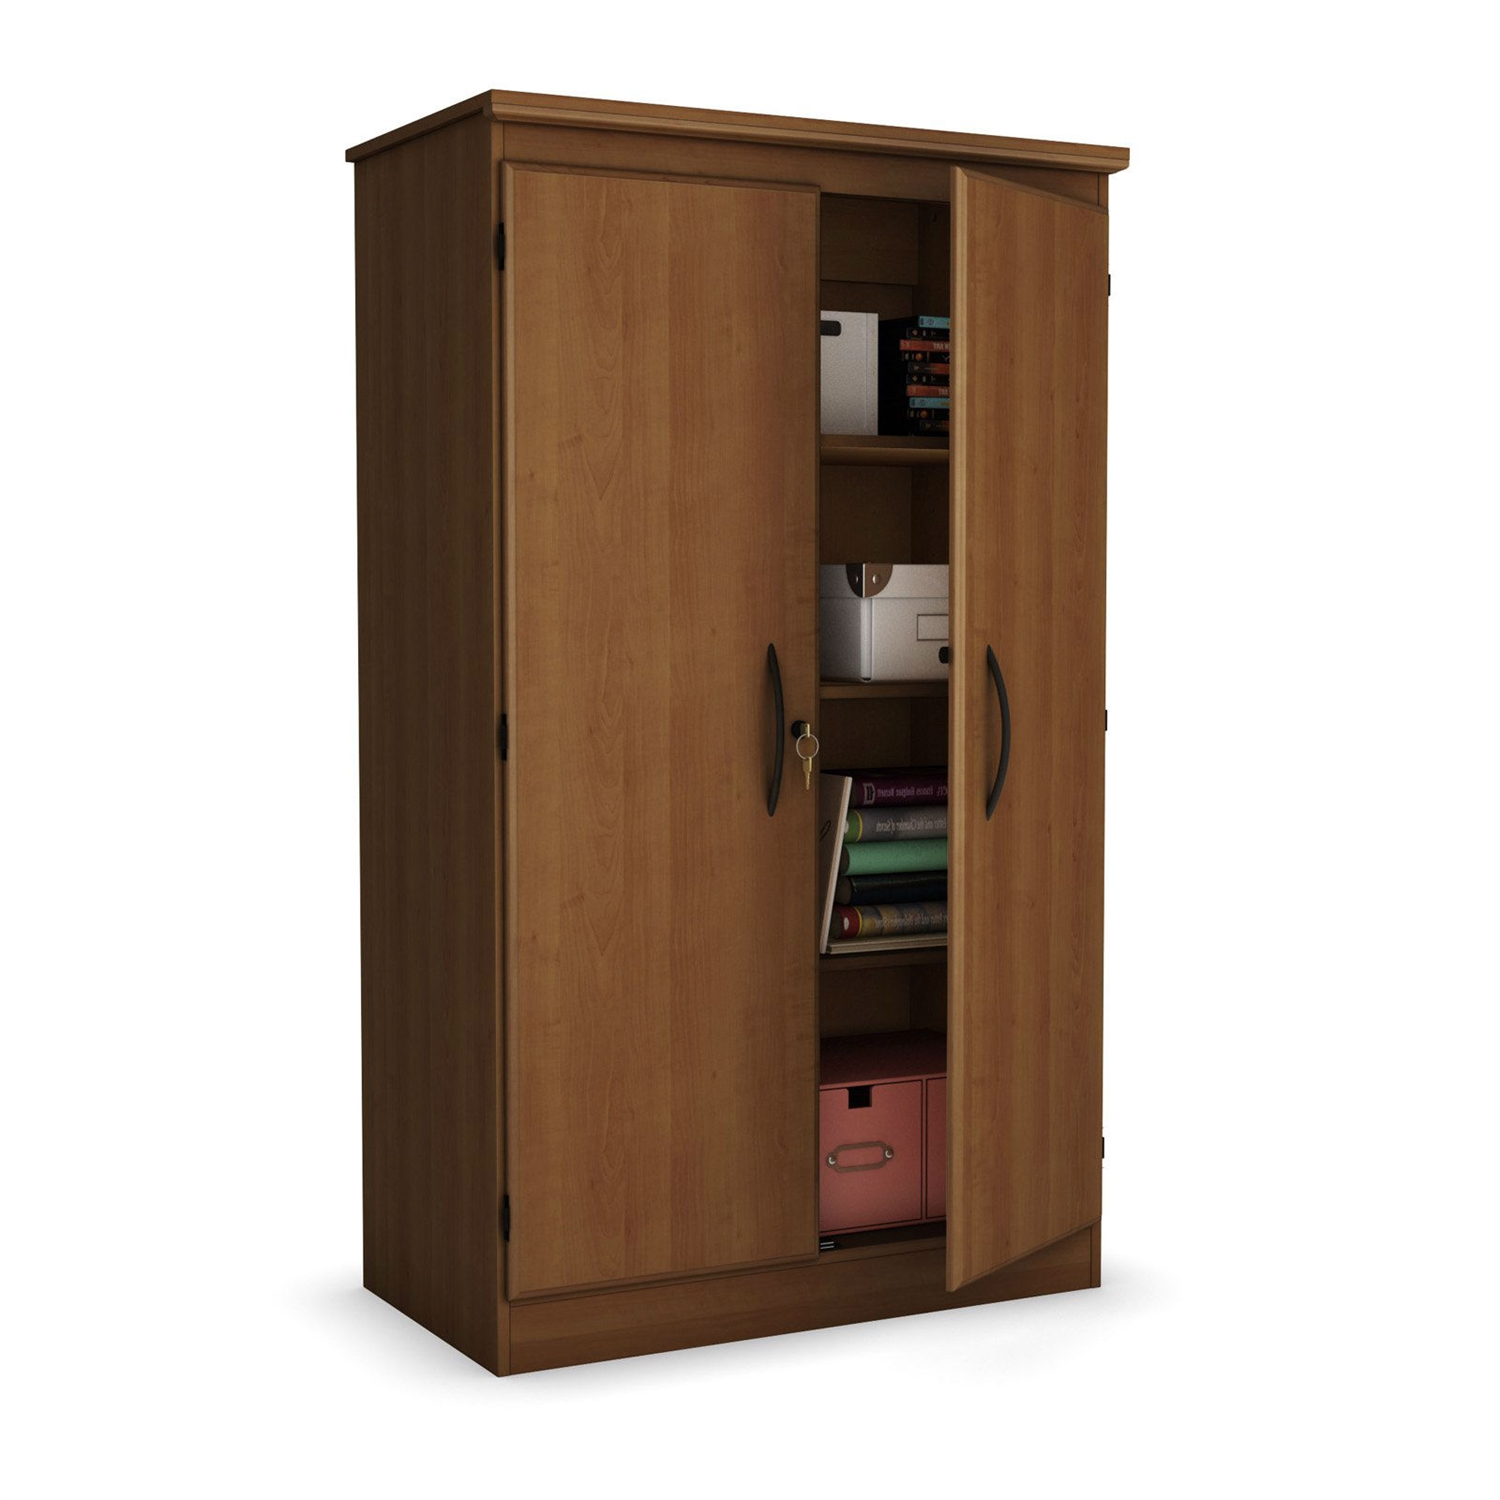 cabinets little farmhouse vintage storage dining living room nest cabinet